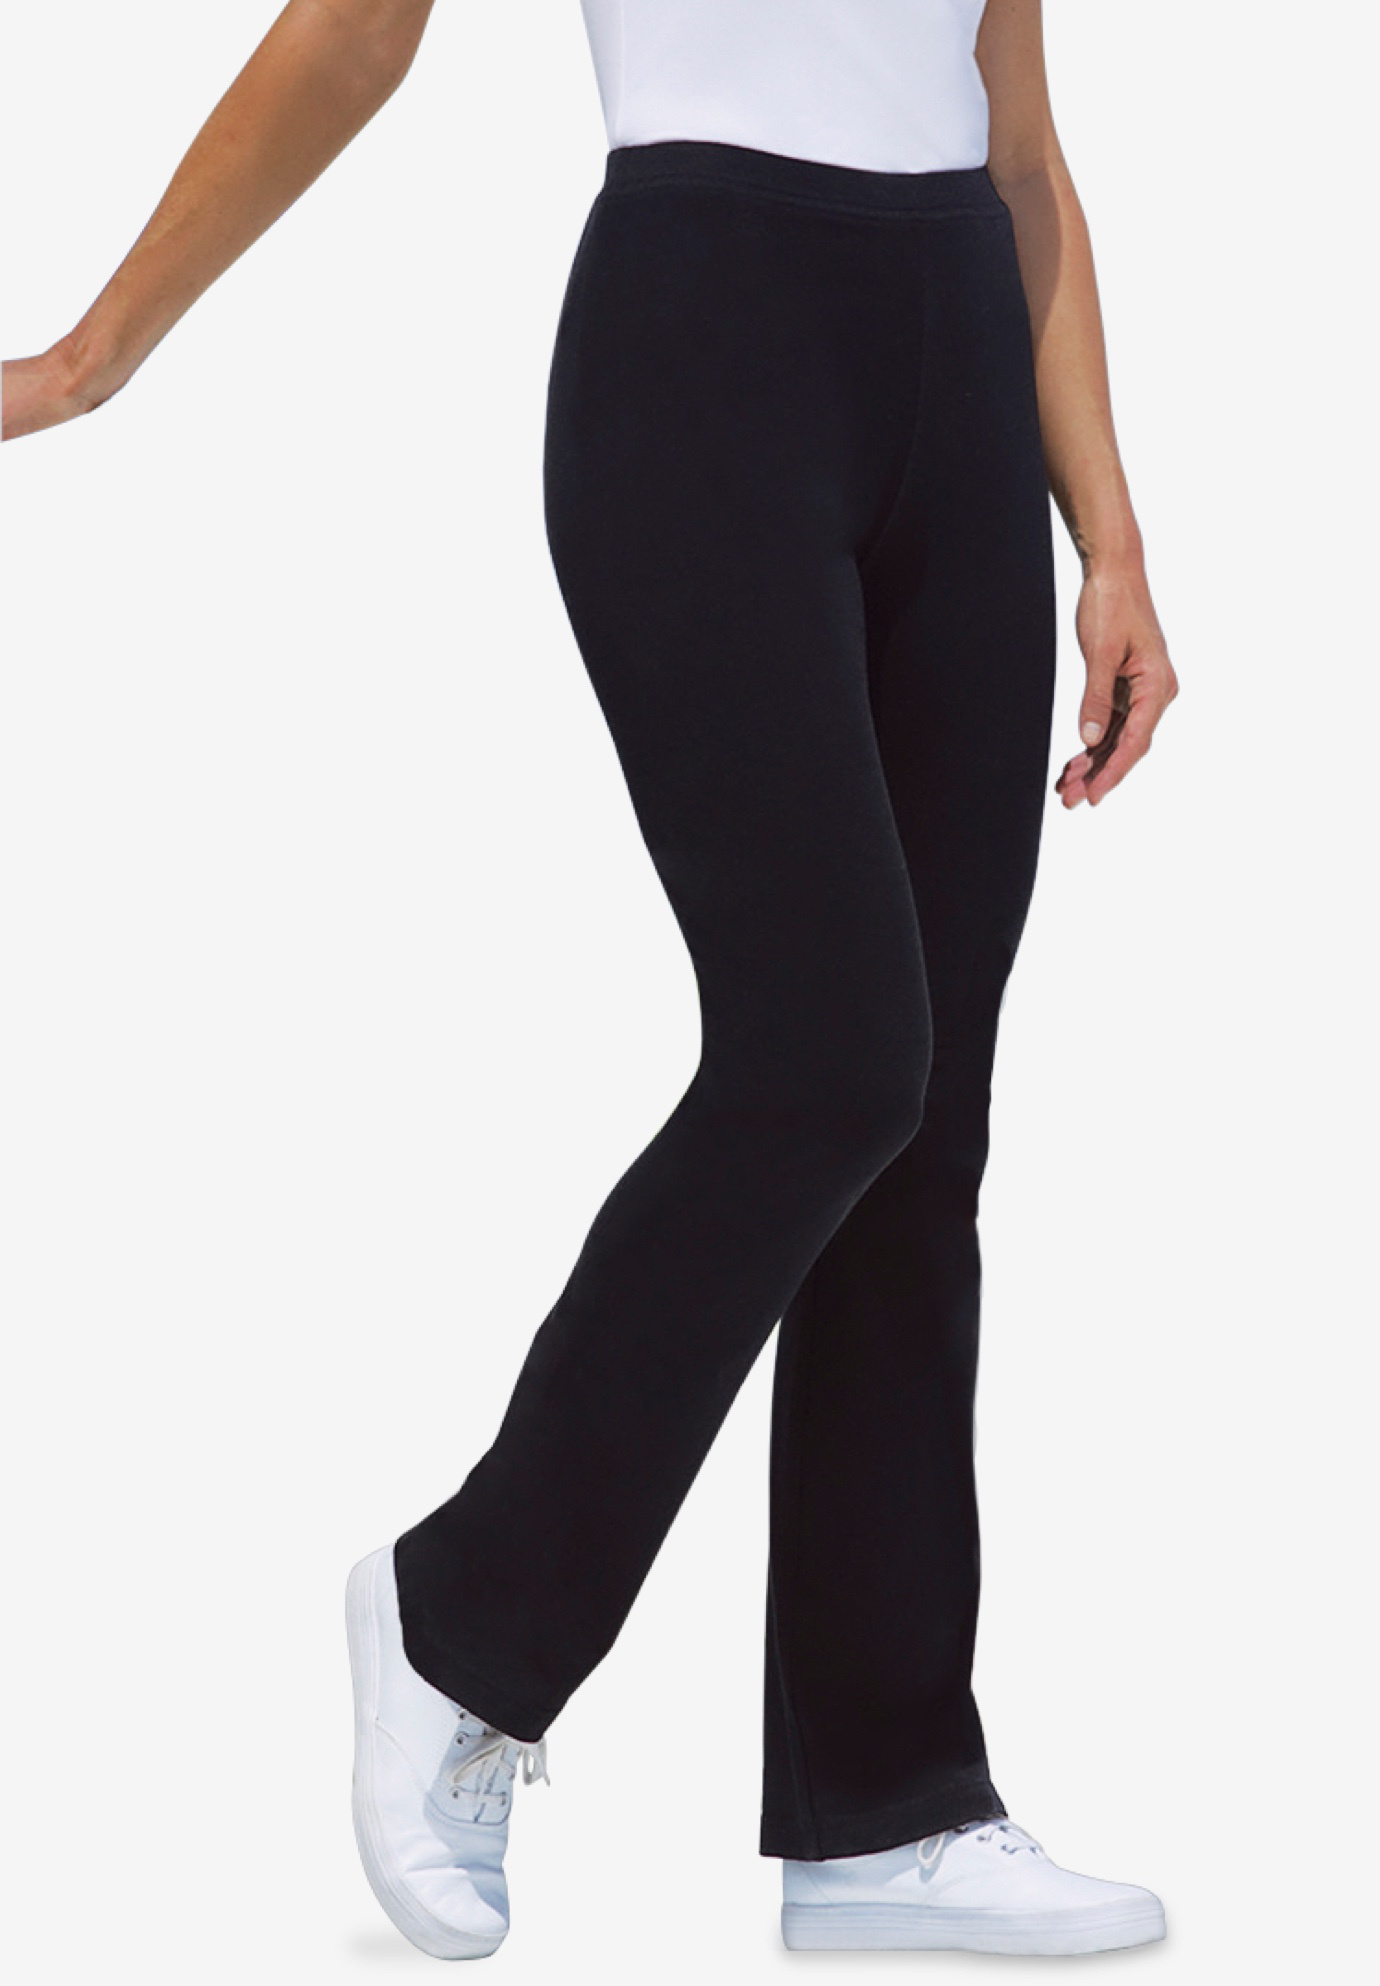 ca4b2a4a01 Stretch Cotton Bootcut Yoga Pant